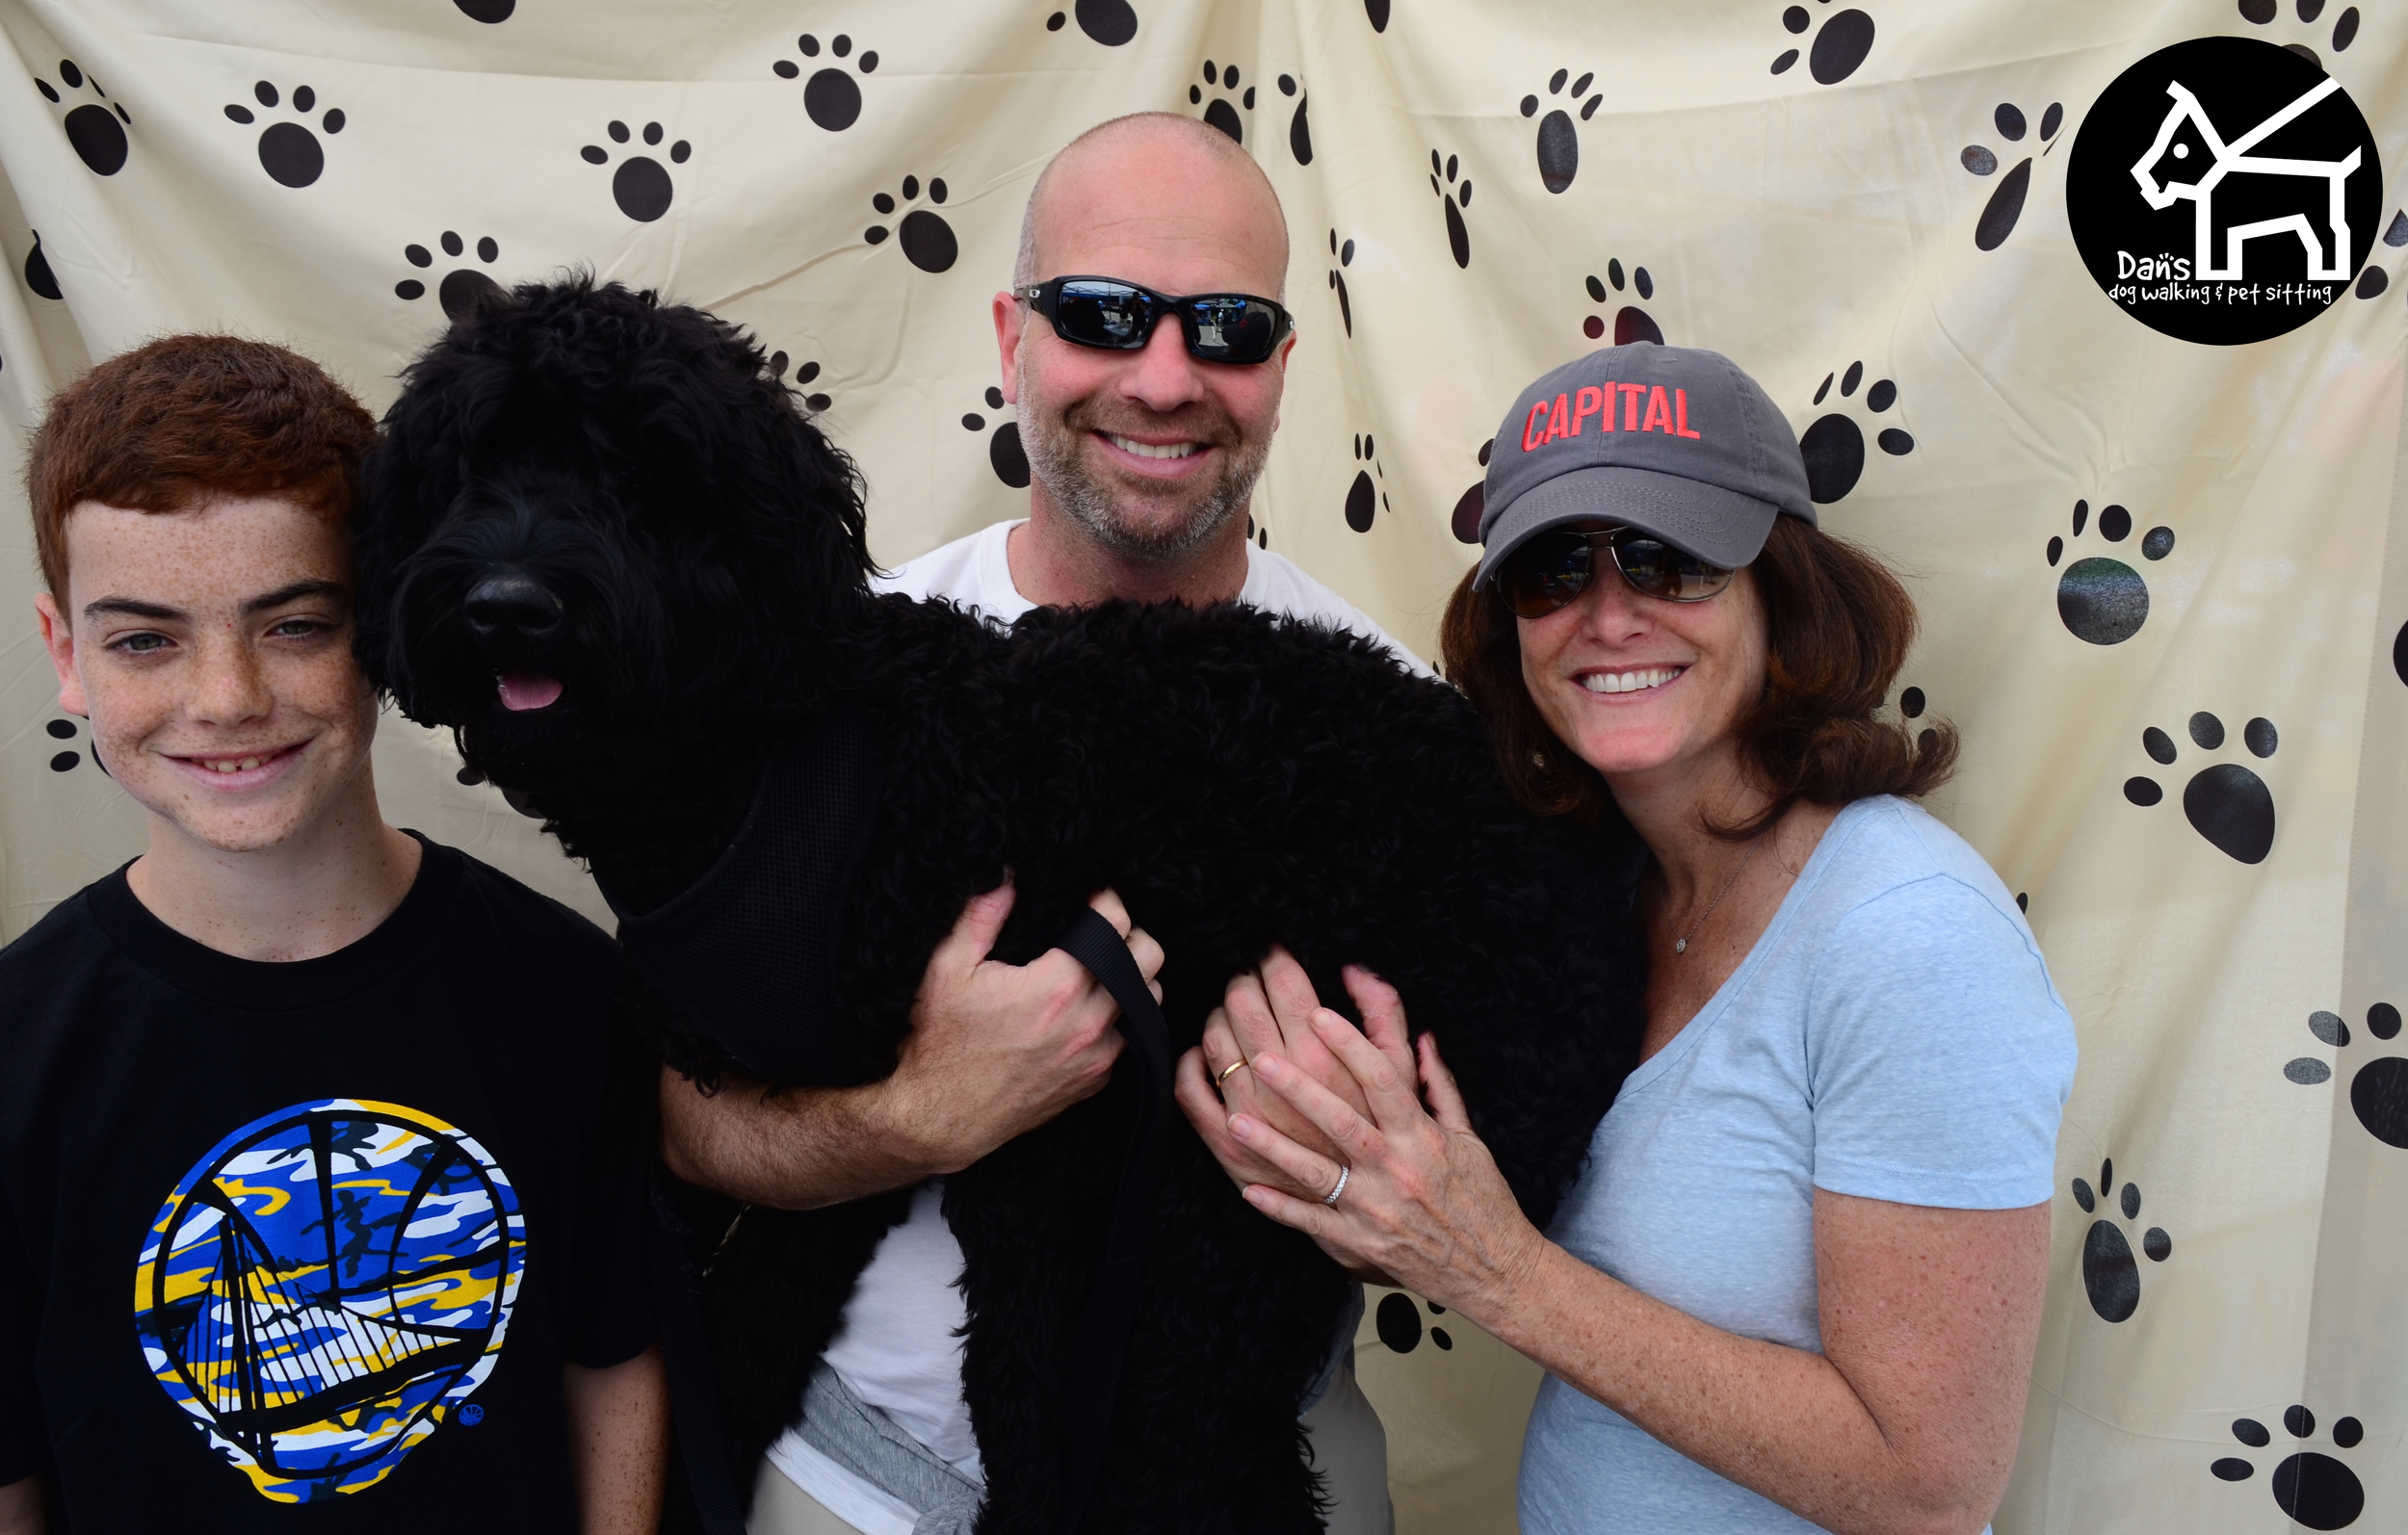 Family Photo Time at Dan's Dog Walking and Pet Sitting Doggie Photo Booth at Harbor Fest 2015.jpg